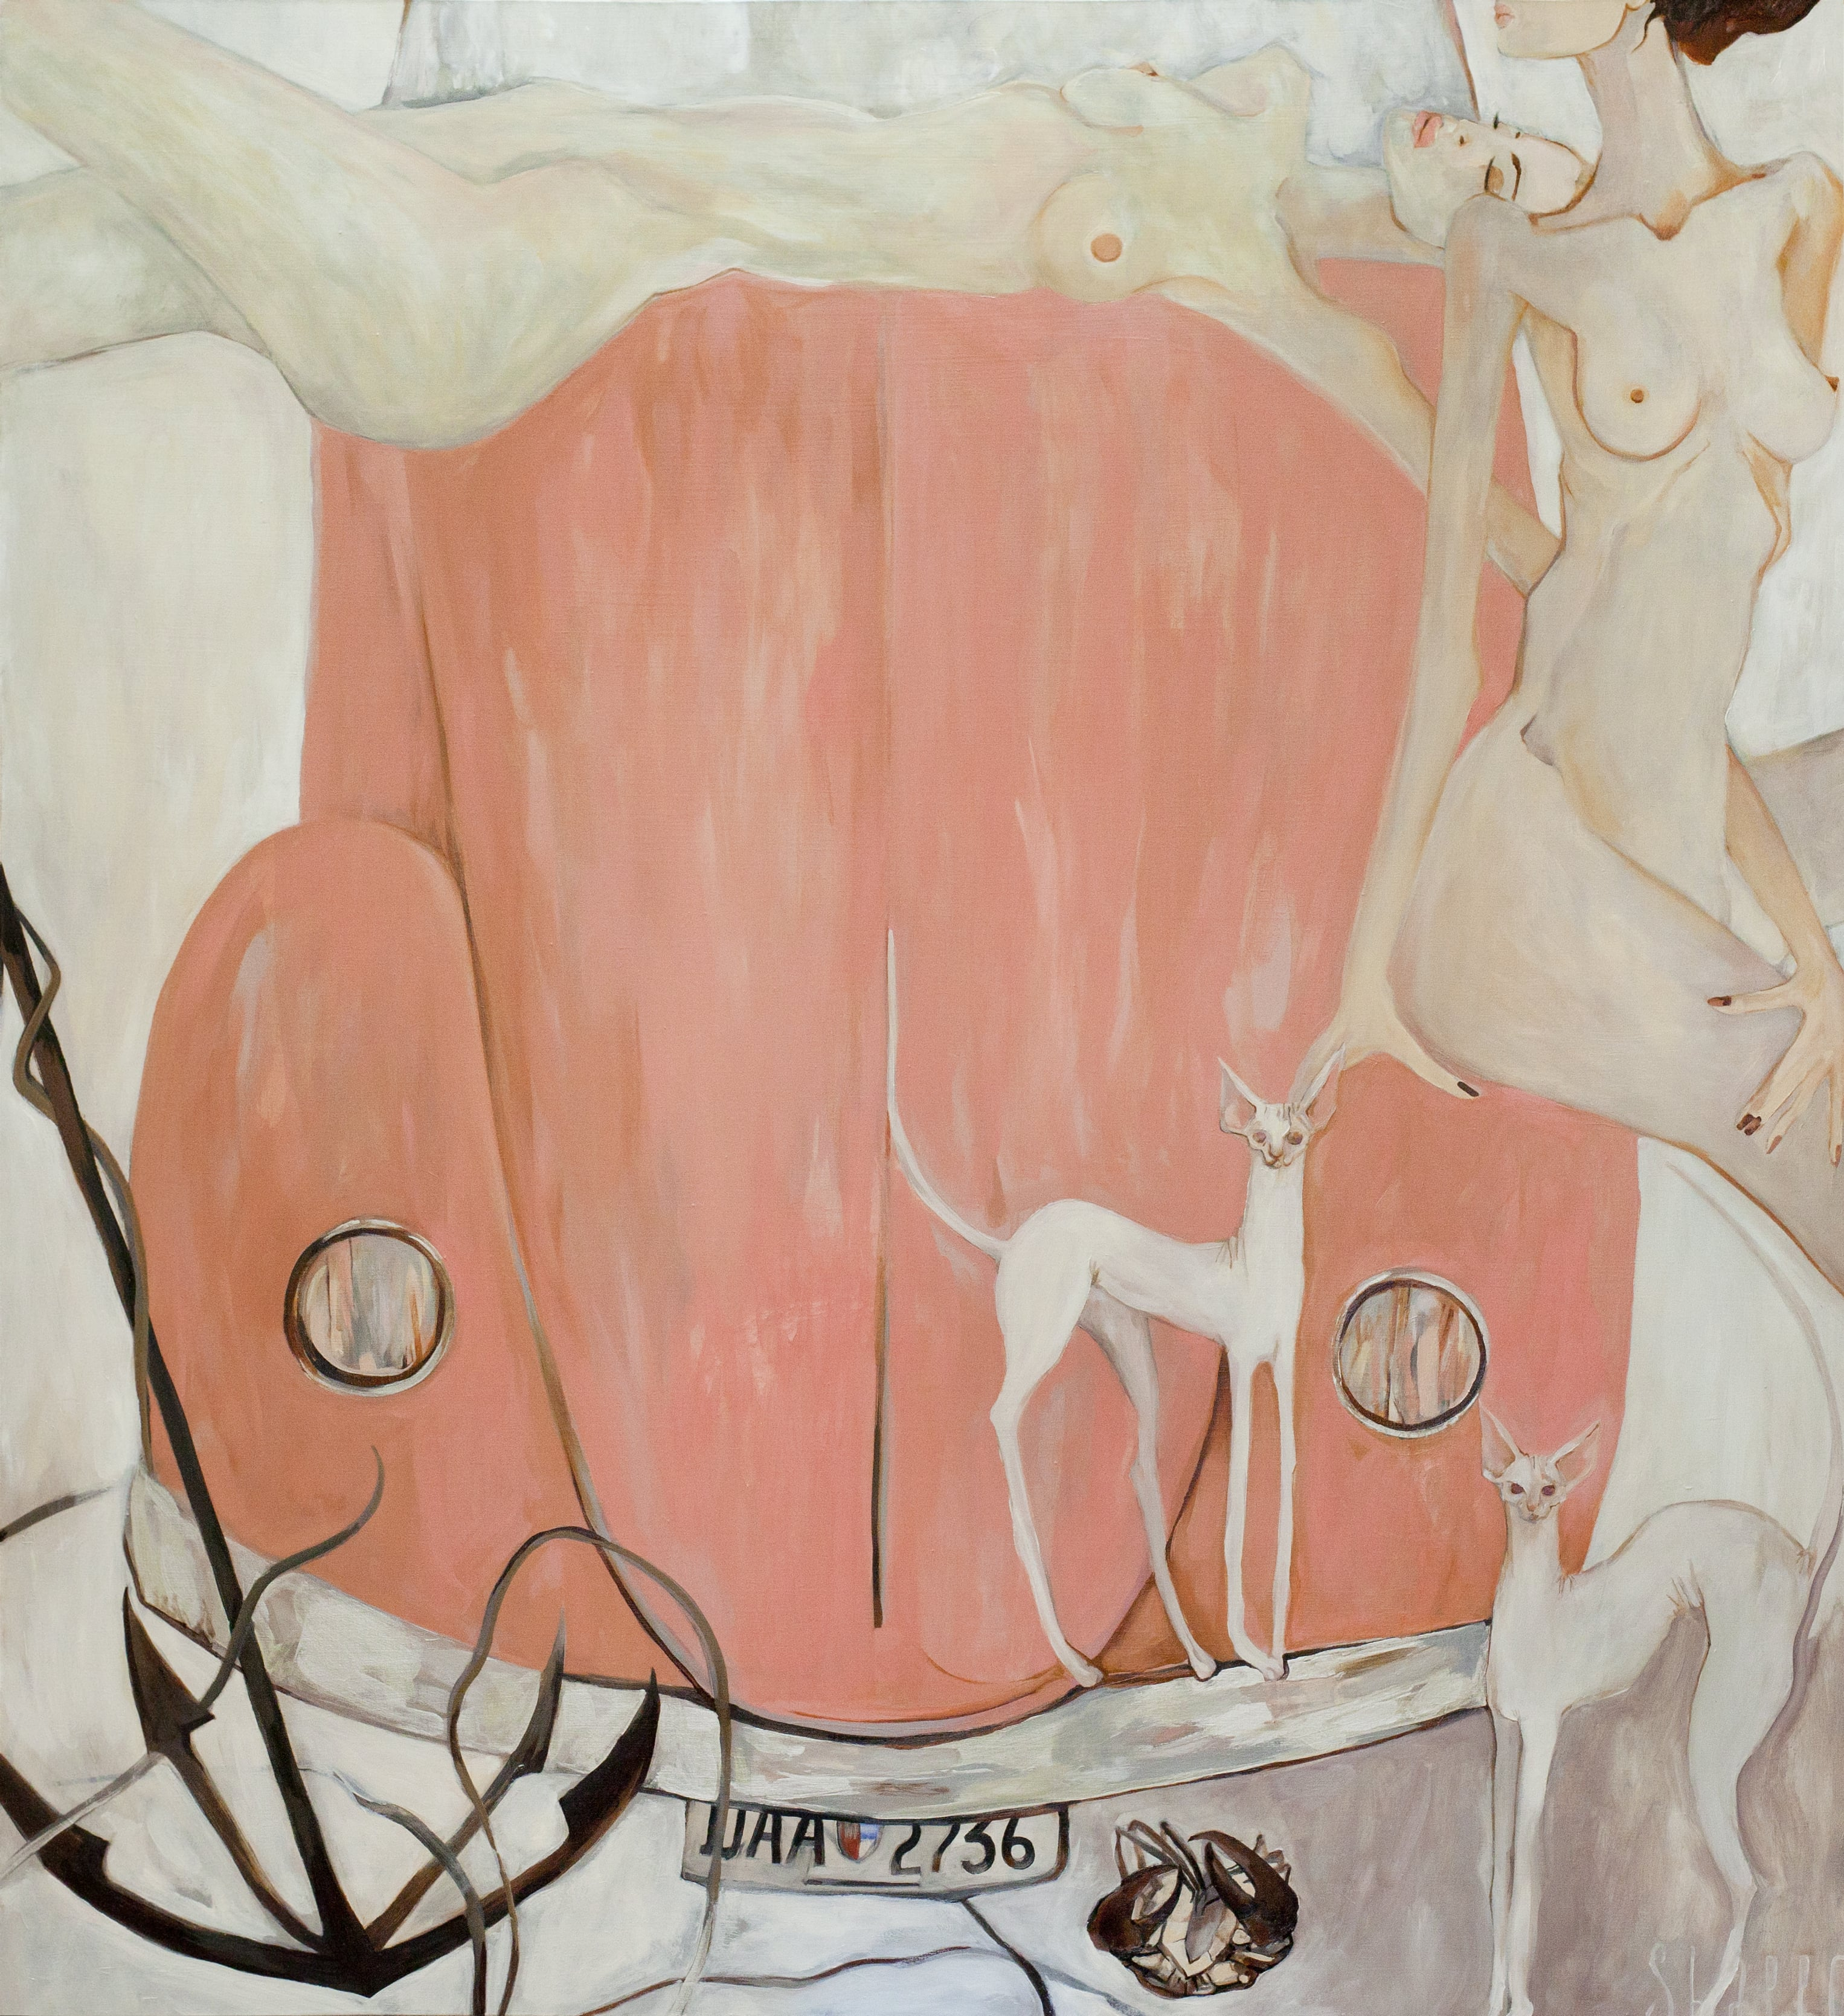 CATS AND AN OVERTURNED CRAB. canvas. oil. 180X200 cm.